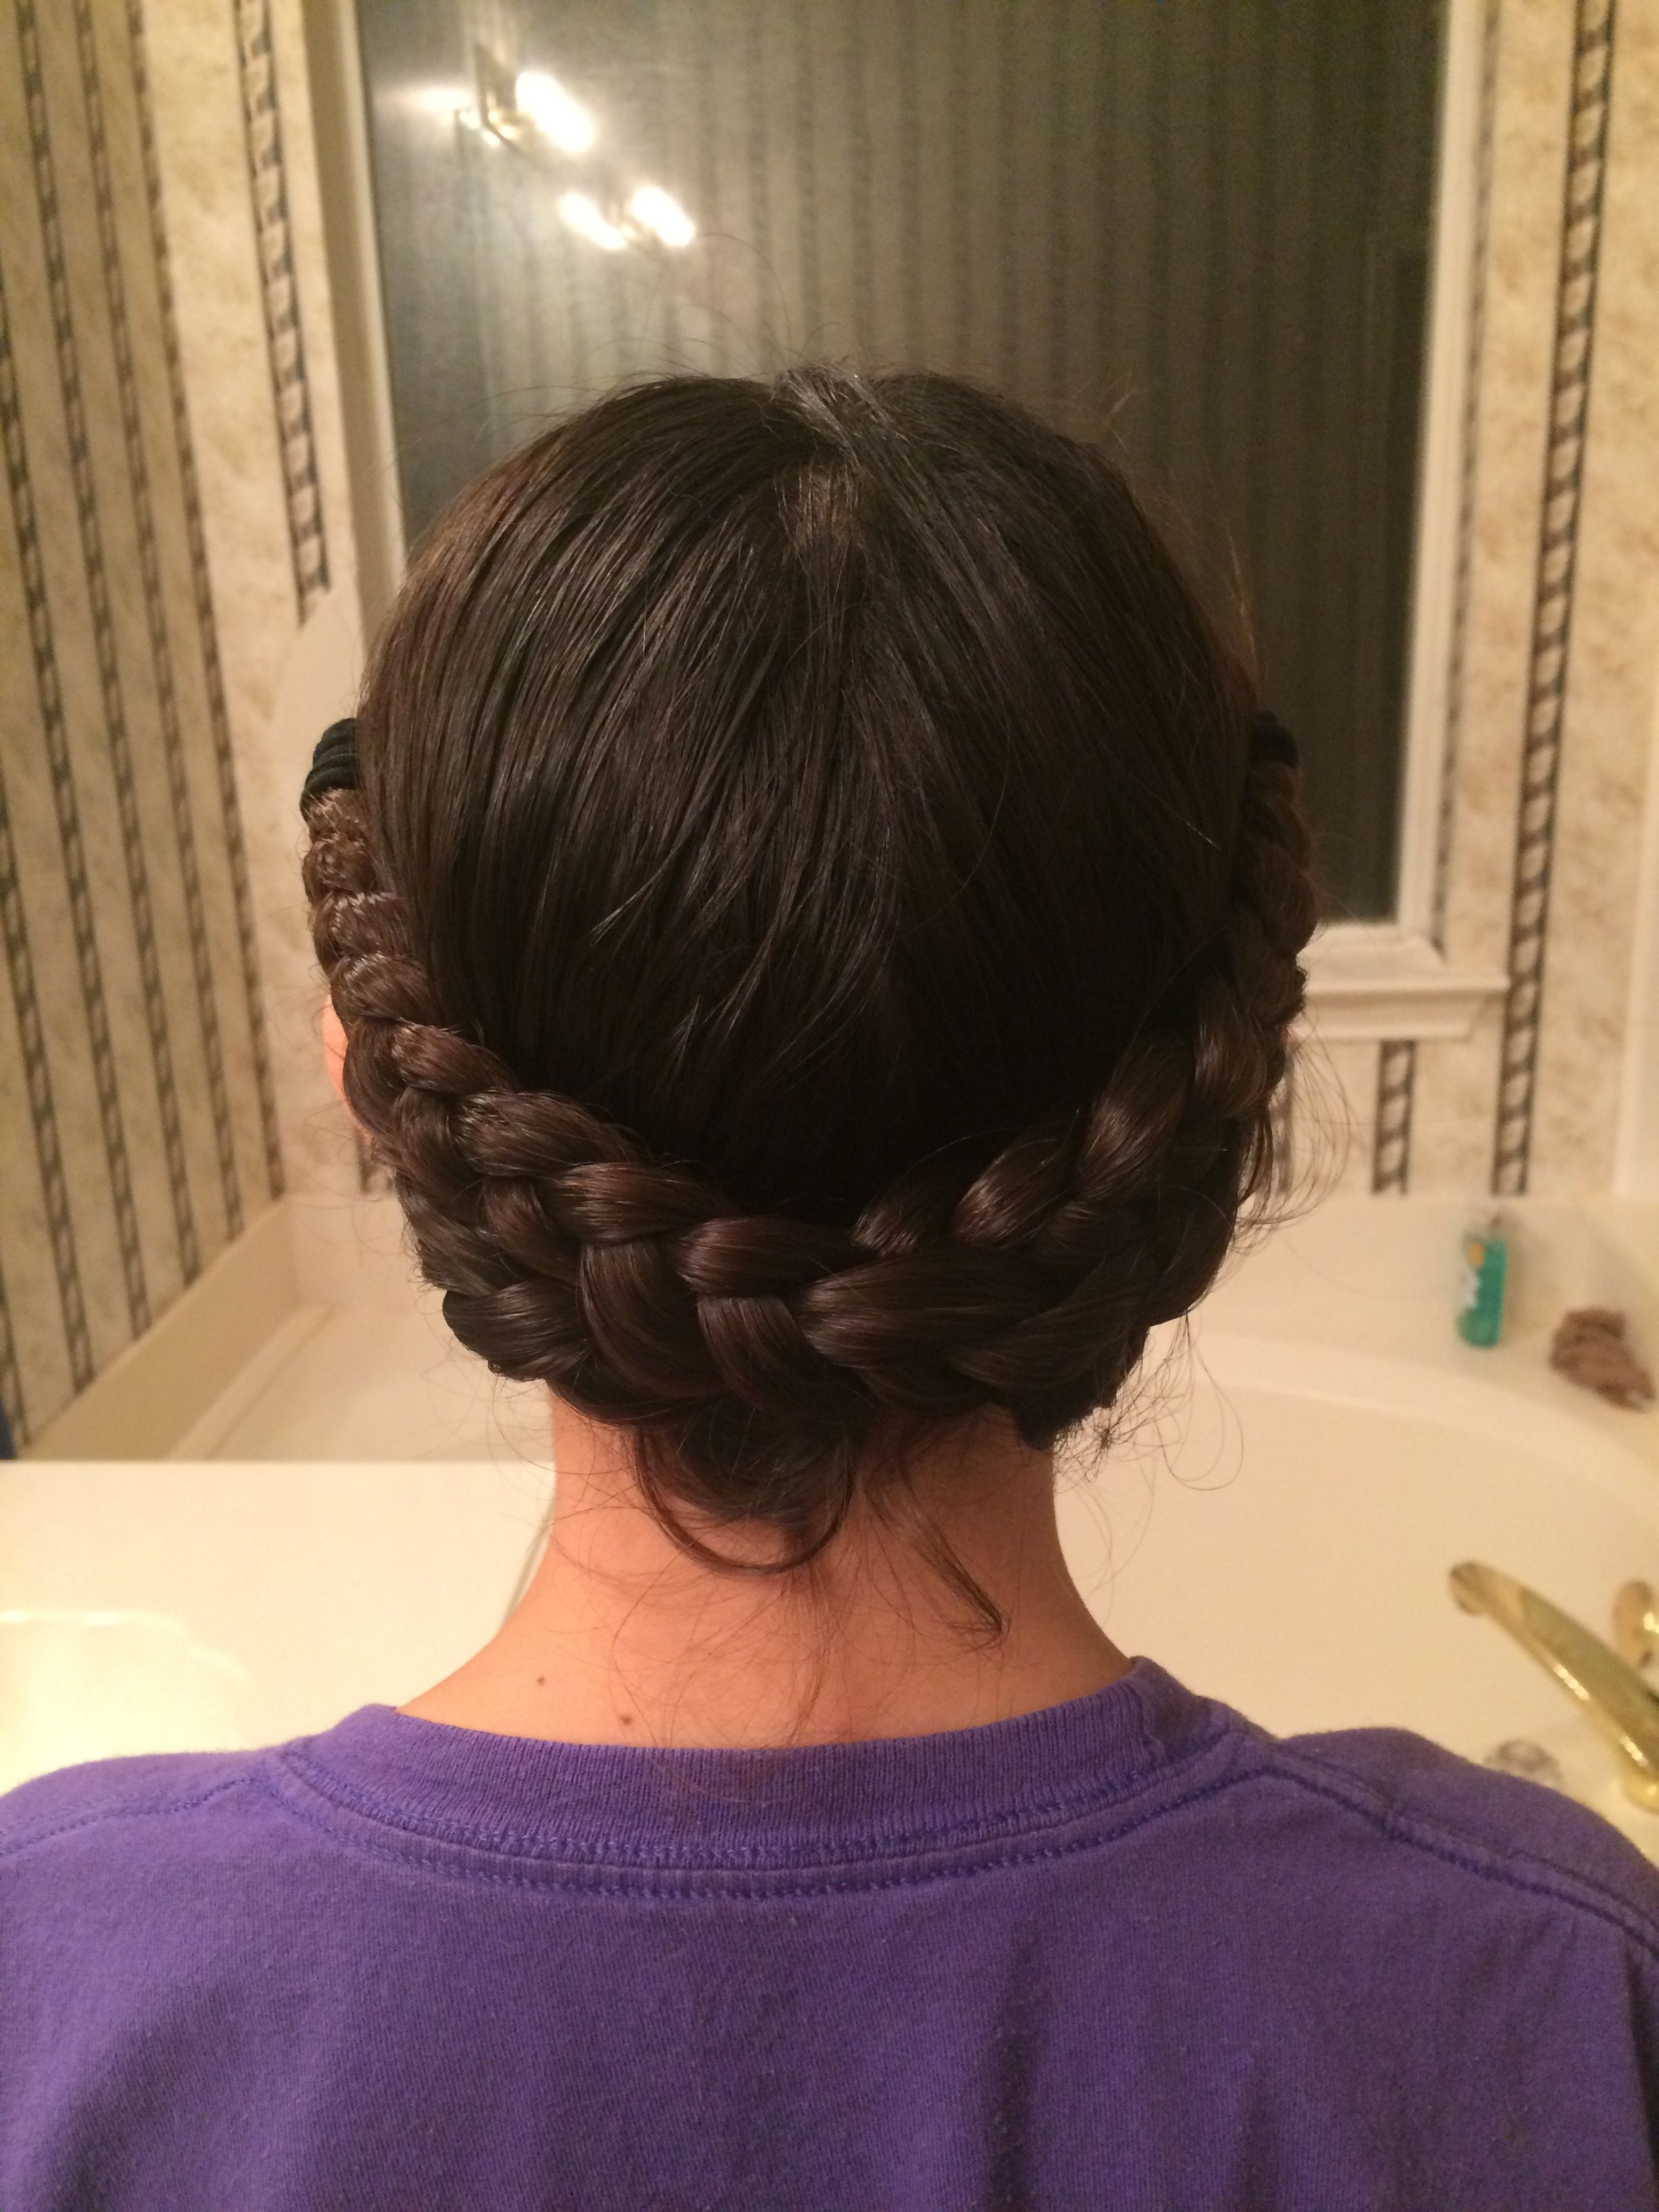 Braid Crown: 1Make Two Braids On The Back Of Your Head 2 With Well Known Tipped Box Braid Spiral Bun Hairstyles (View 4 of 20)